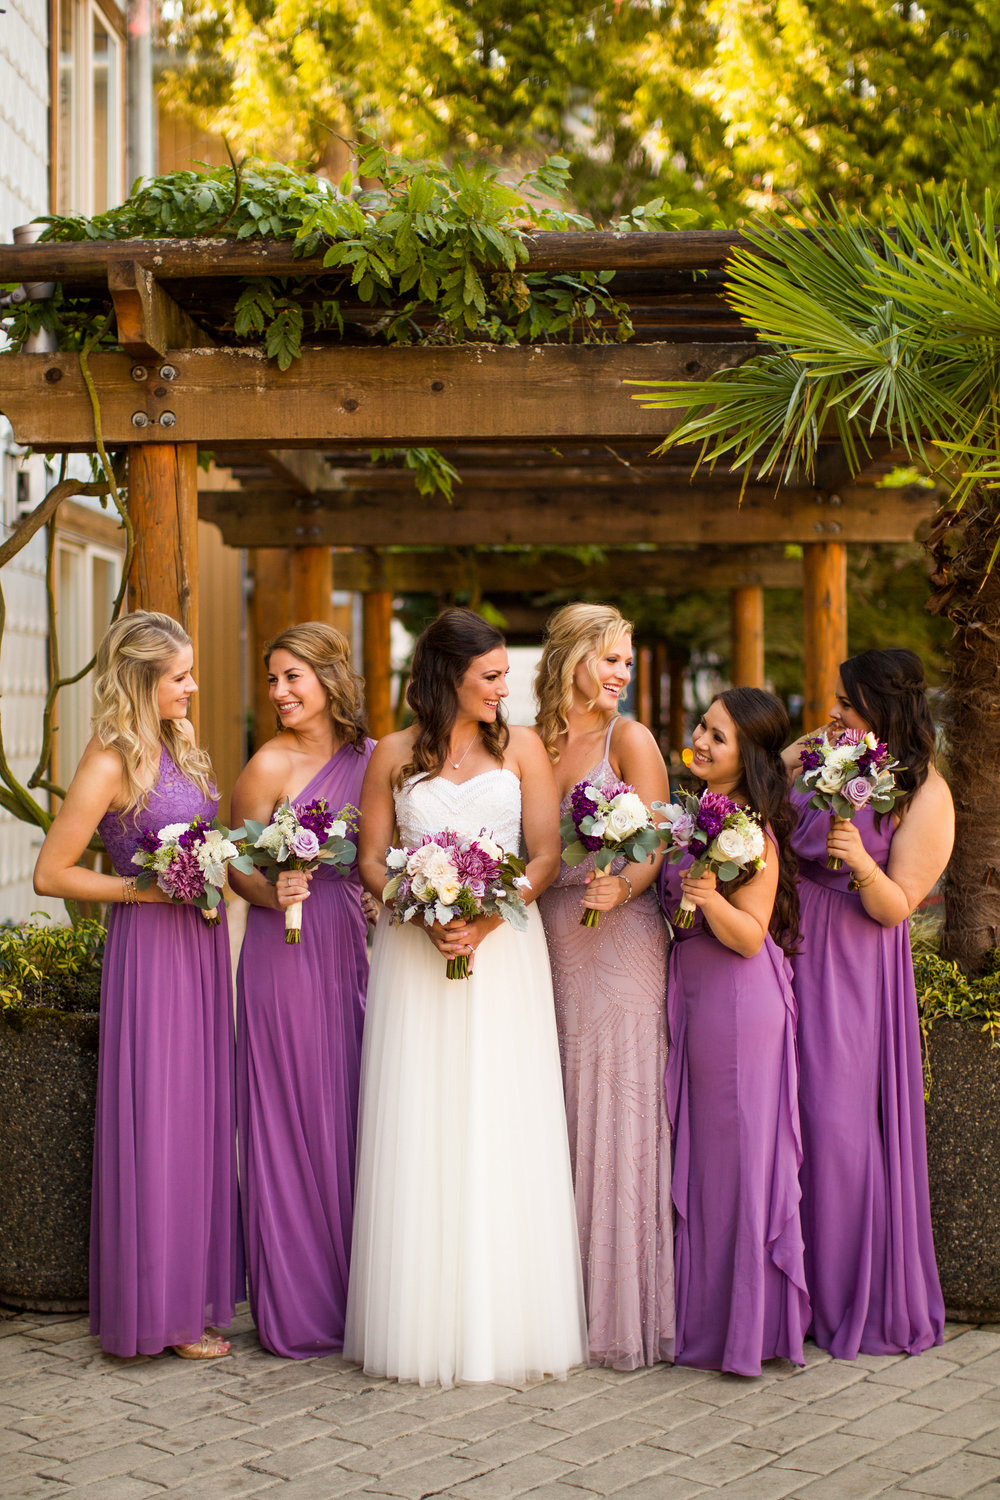 Seattle Wedding Planner, Wedding Wise | Ciccarelli Photography | Edgewater Hotel Wedding | David's Bridal bridesmaids dresses in wisteria purple